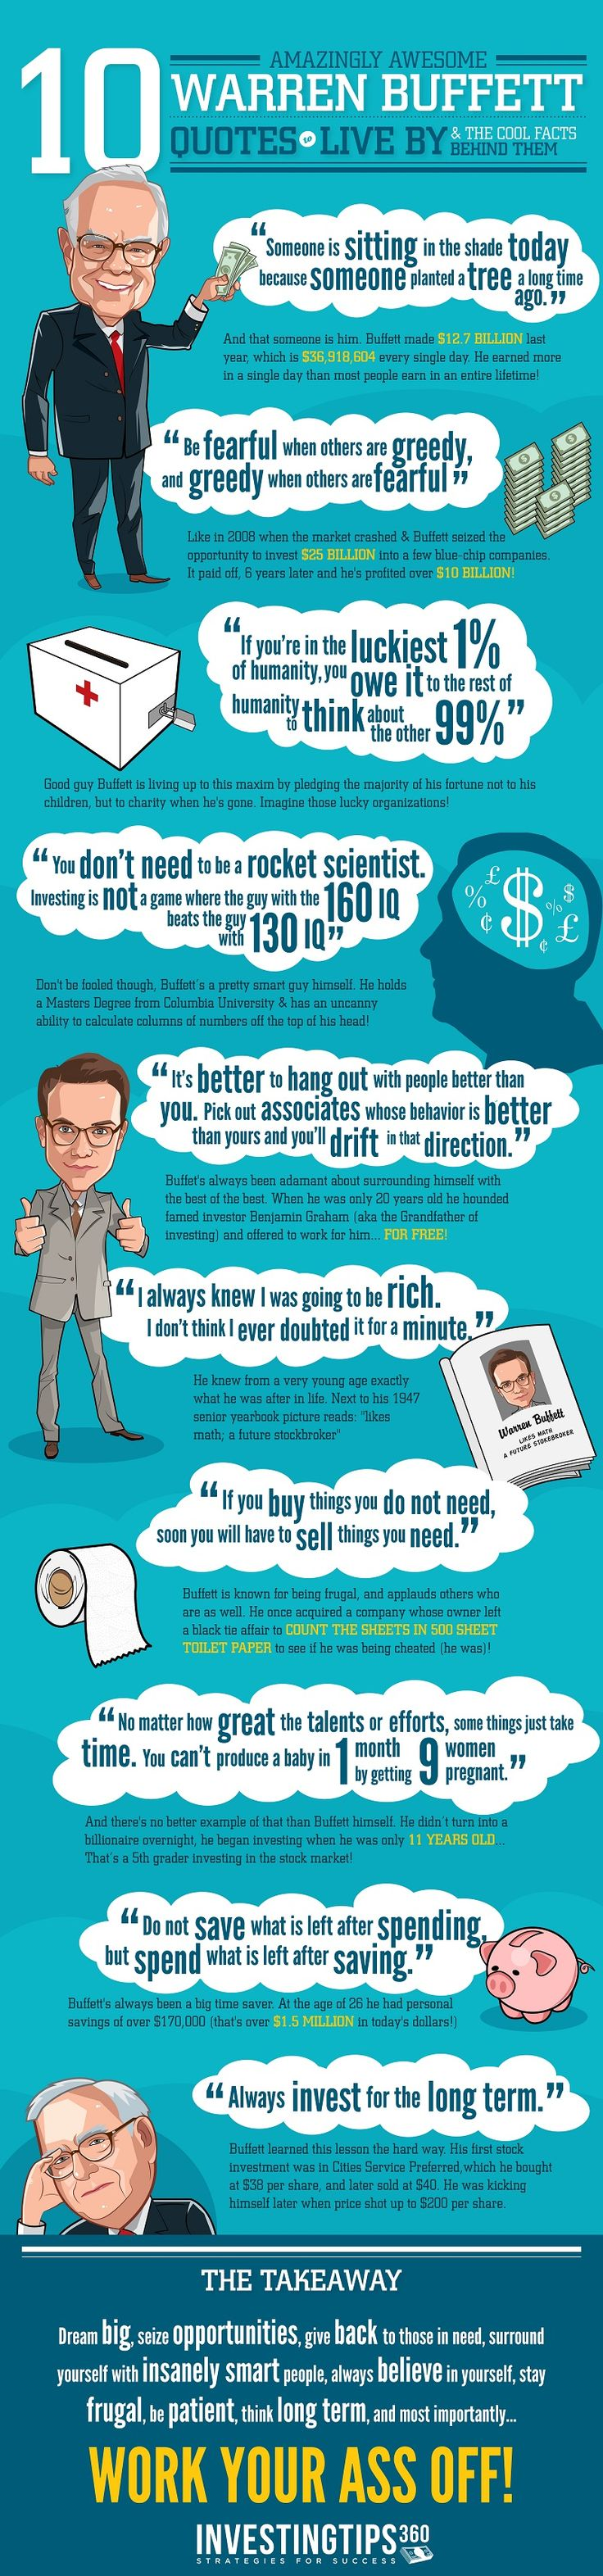 warren-buffett-quotes..great words to live by.